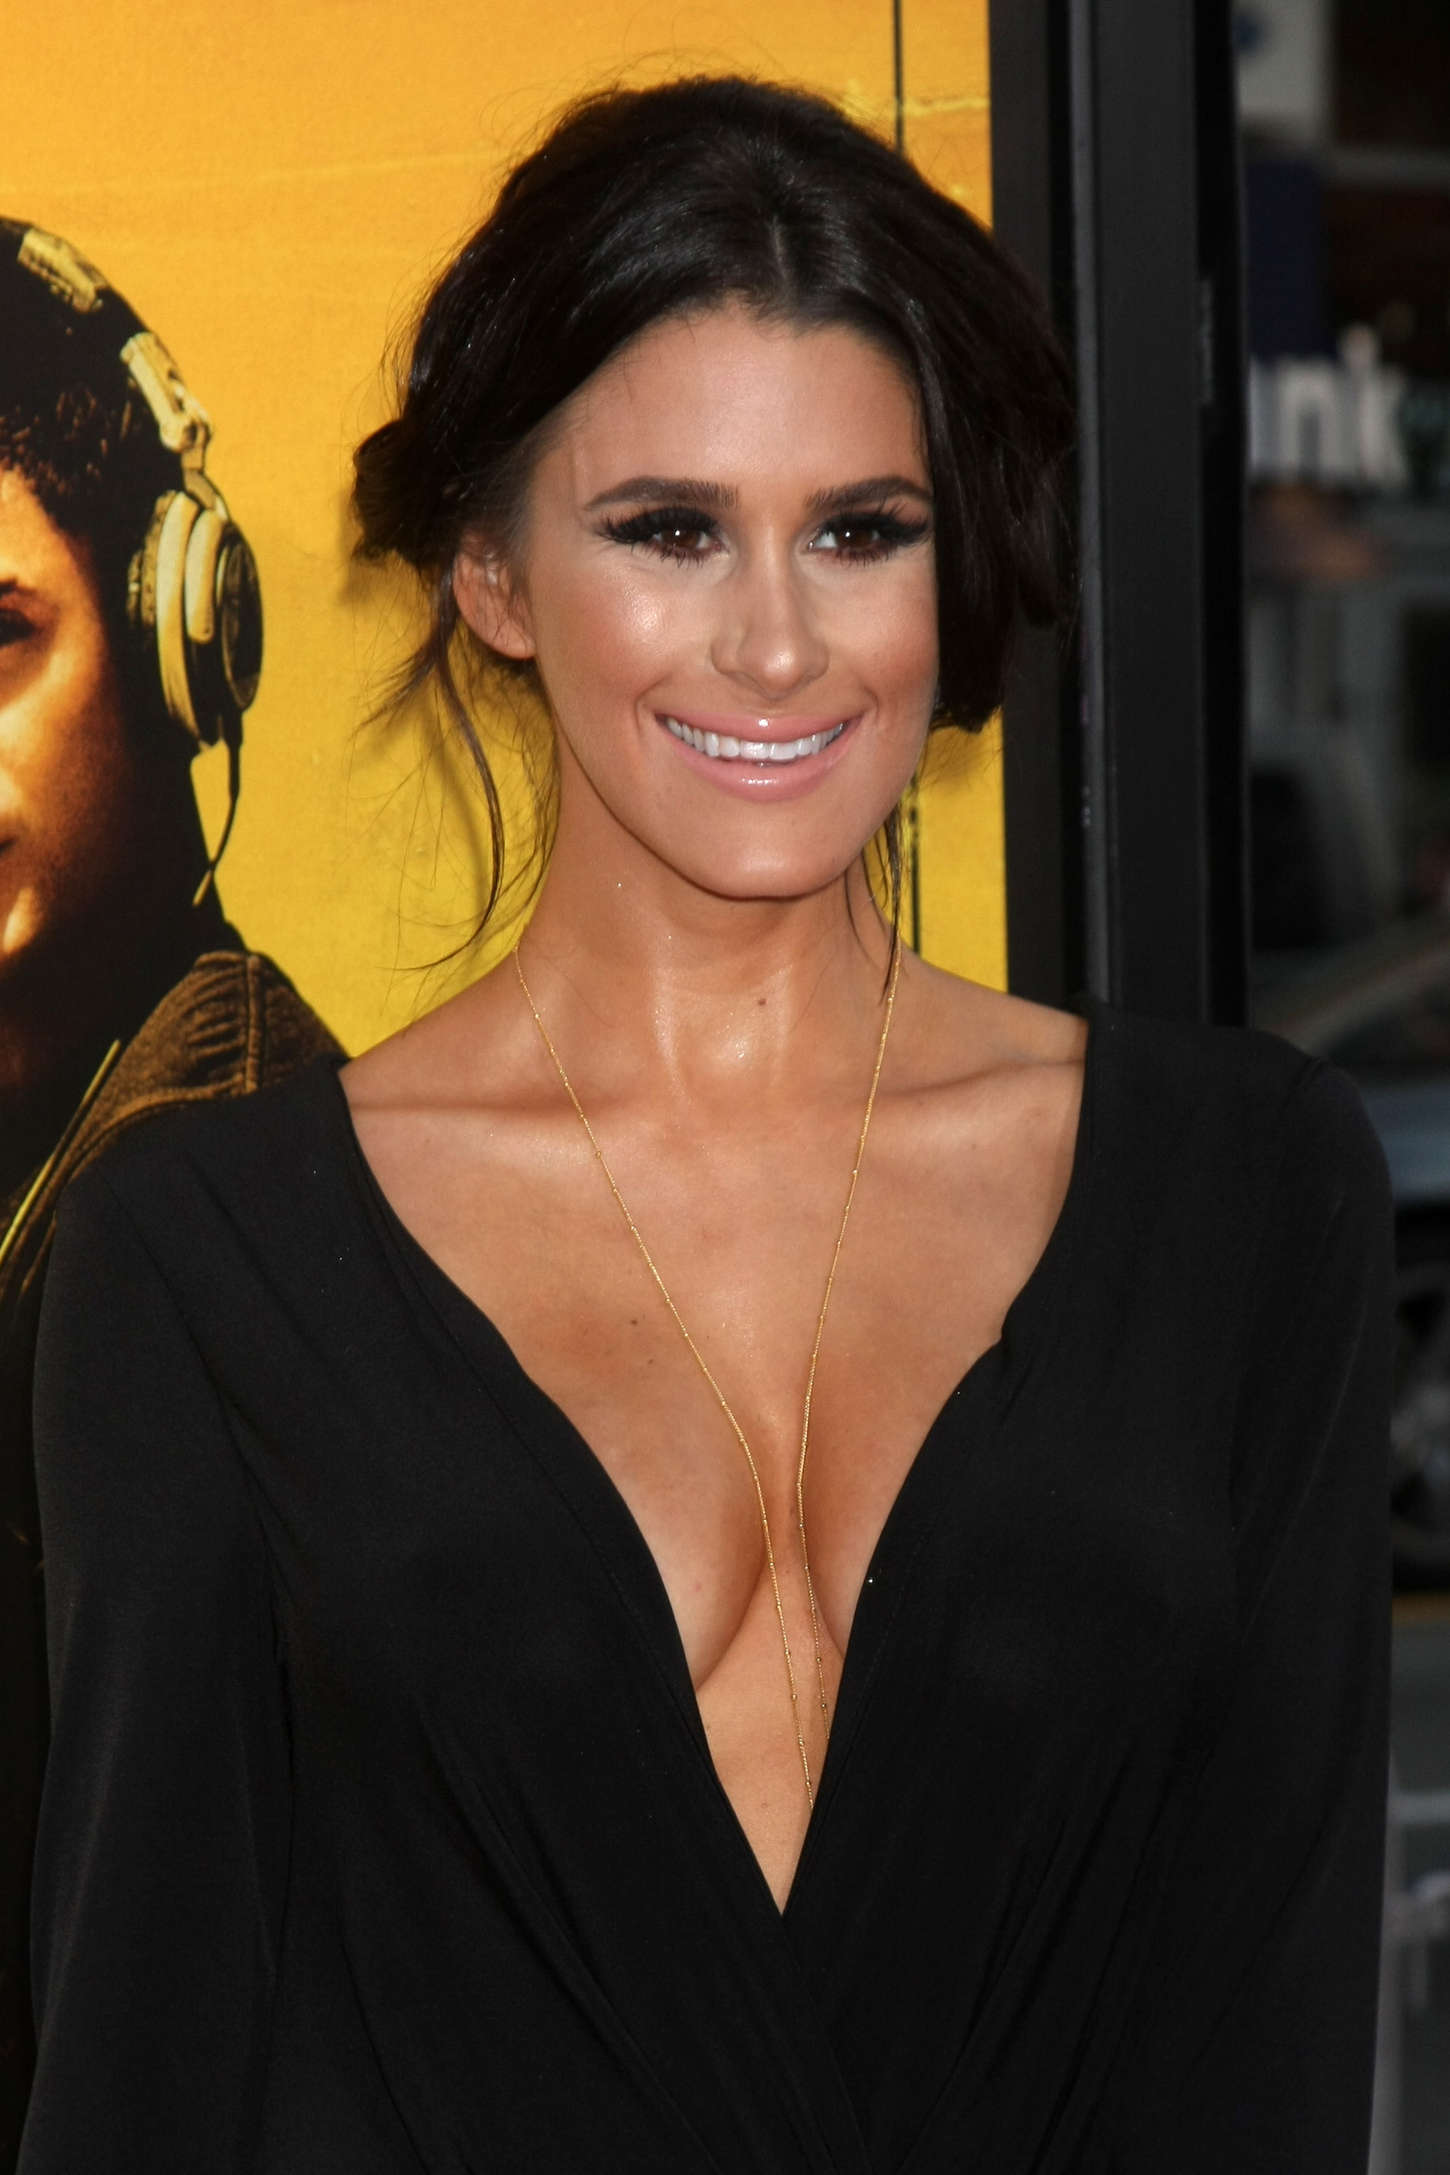 Selfie Brittany Furlan naked (89 photo), Tits, Fappening, Instagram, braless 2015